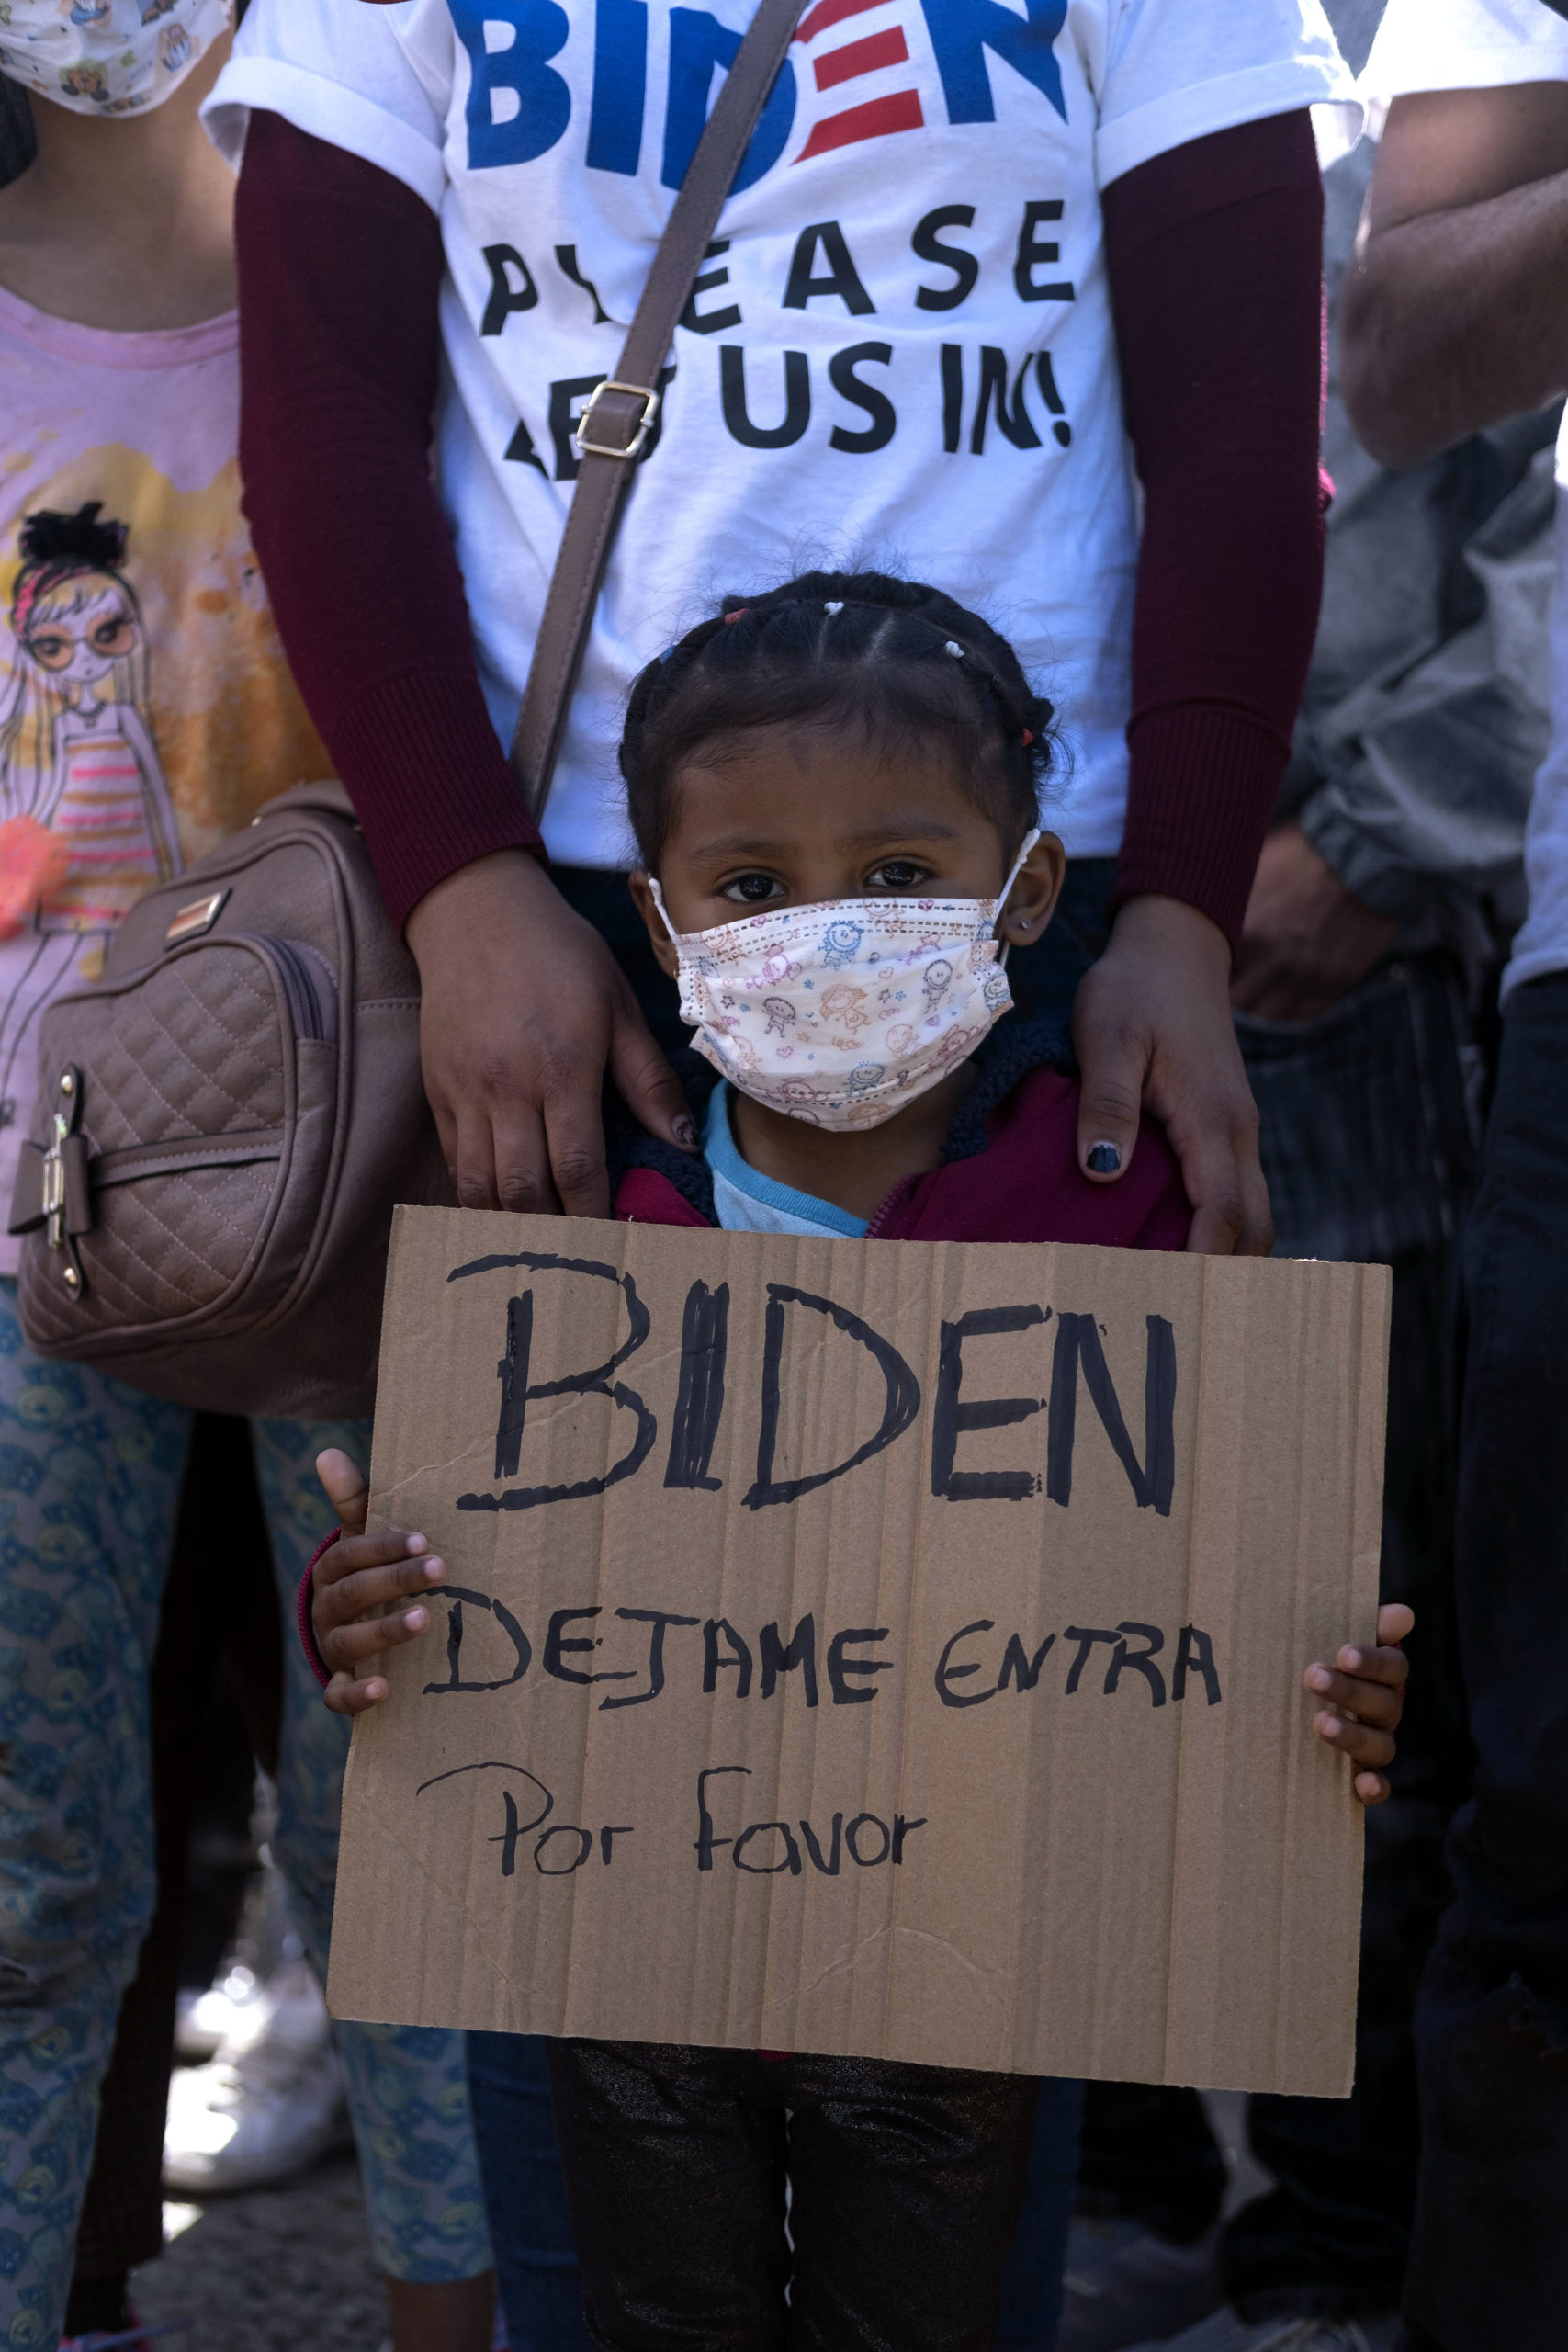 Dareli Matamoros, a girl from Honduras, holds a sign asking President Biden to let her in during a migrant demonstration demanding clearer United States migration policies, at San Ysidro crossing port in Tijuana, Baja California state, Mexico on March 2, 2021. - Thousands of migrants out of the Migrant Protection Protocol (MPP) program are stranded along the US-Mexico border without knowing when or how they will be able to start their migratory process with US authorities. (Photo by Guillermo Arias / AFP) (Photo by GUILLERMO ARIAS/AFP via Getty Images)